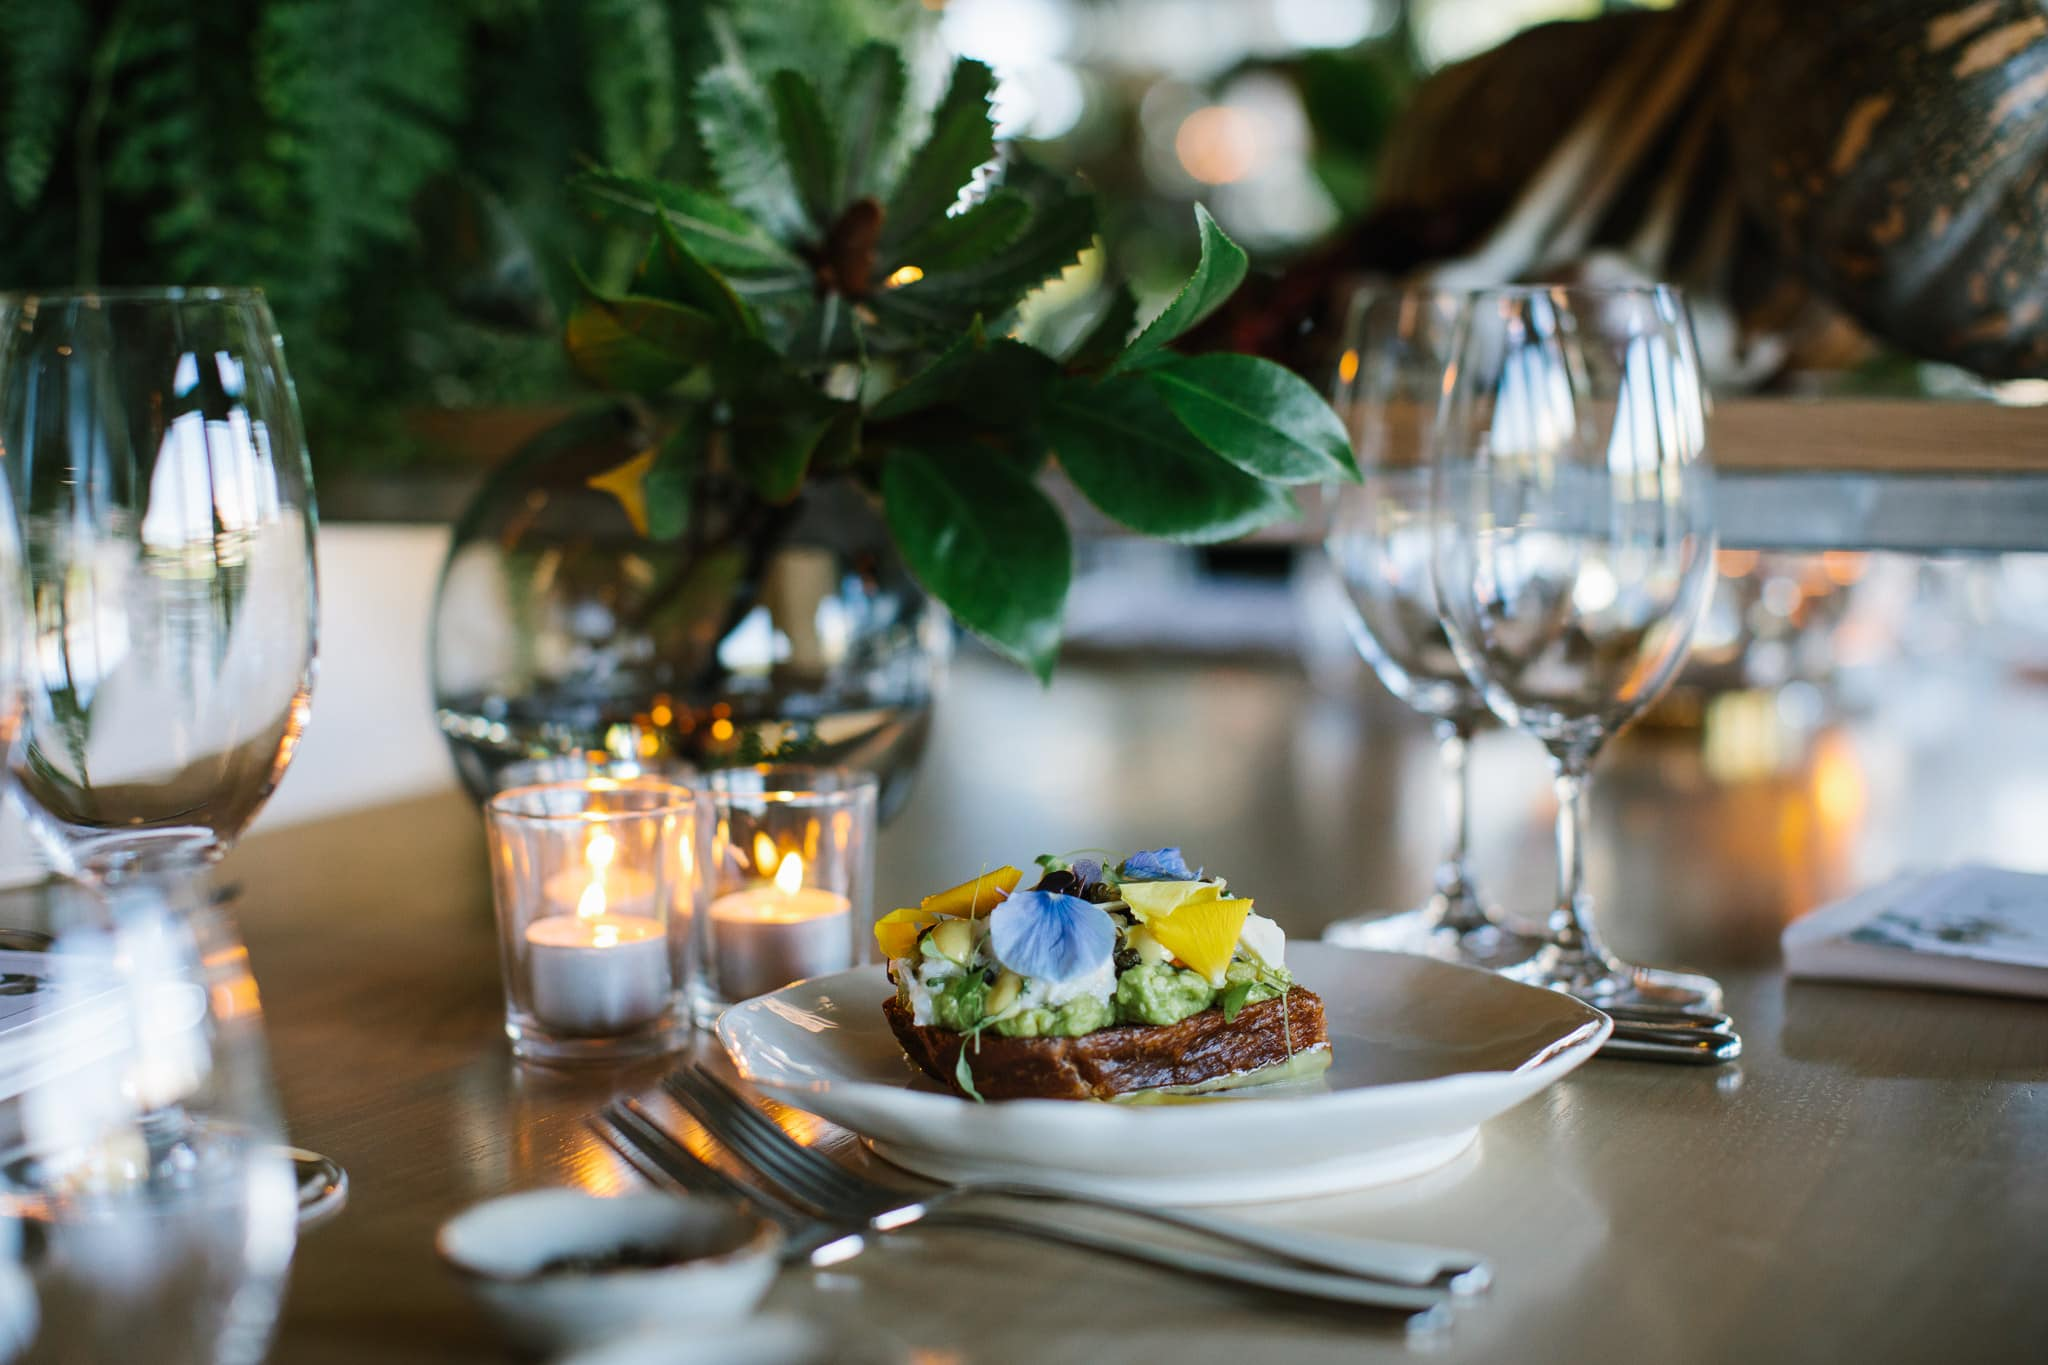 luxury dining - event photos of the best food